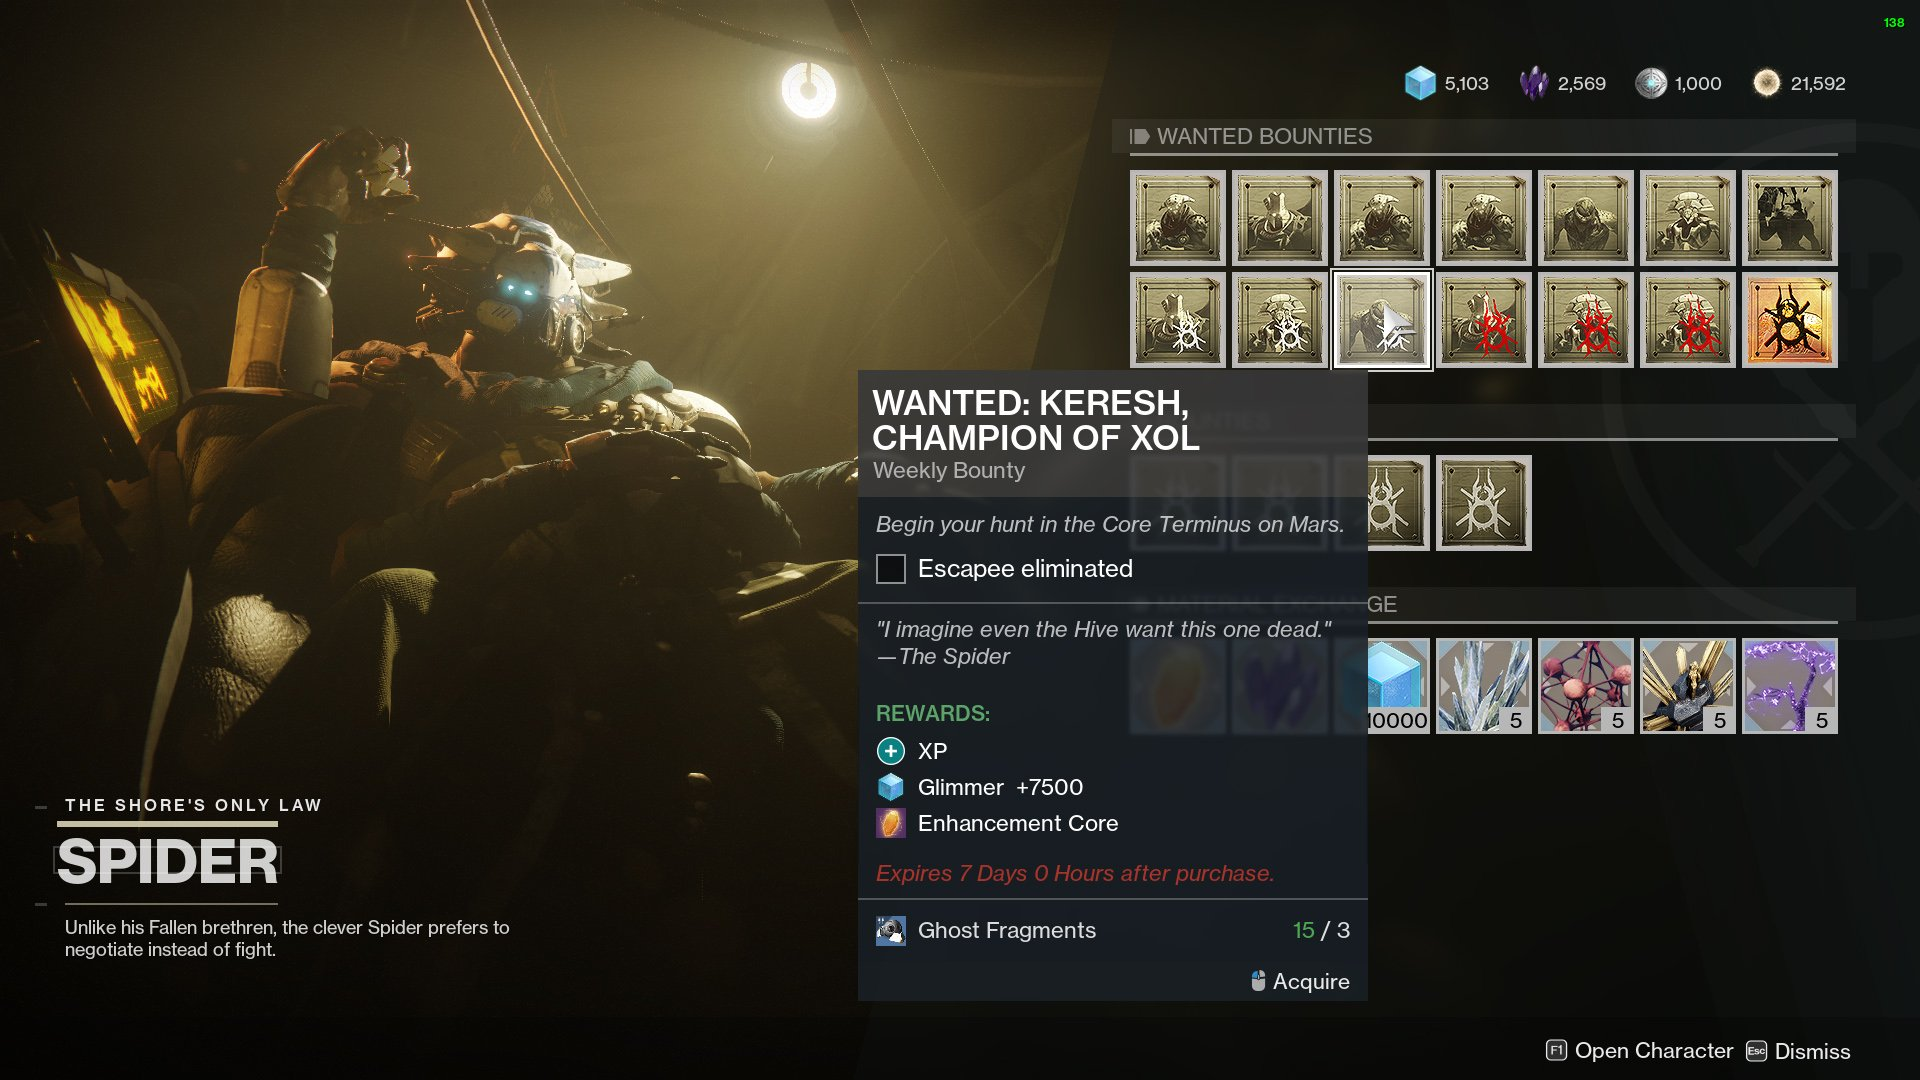 Destiny 2 Enhancement Core Spider Wanted Bounty